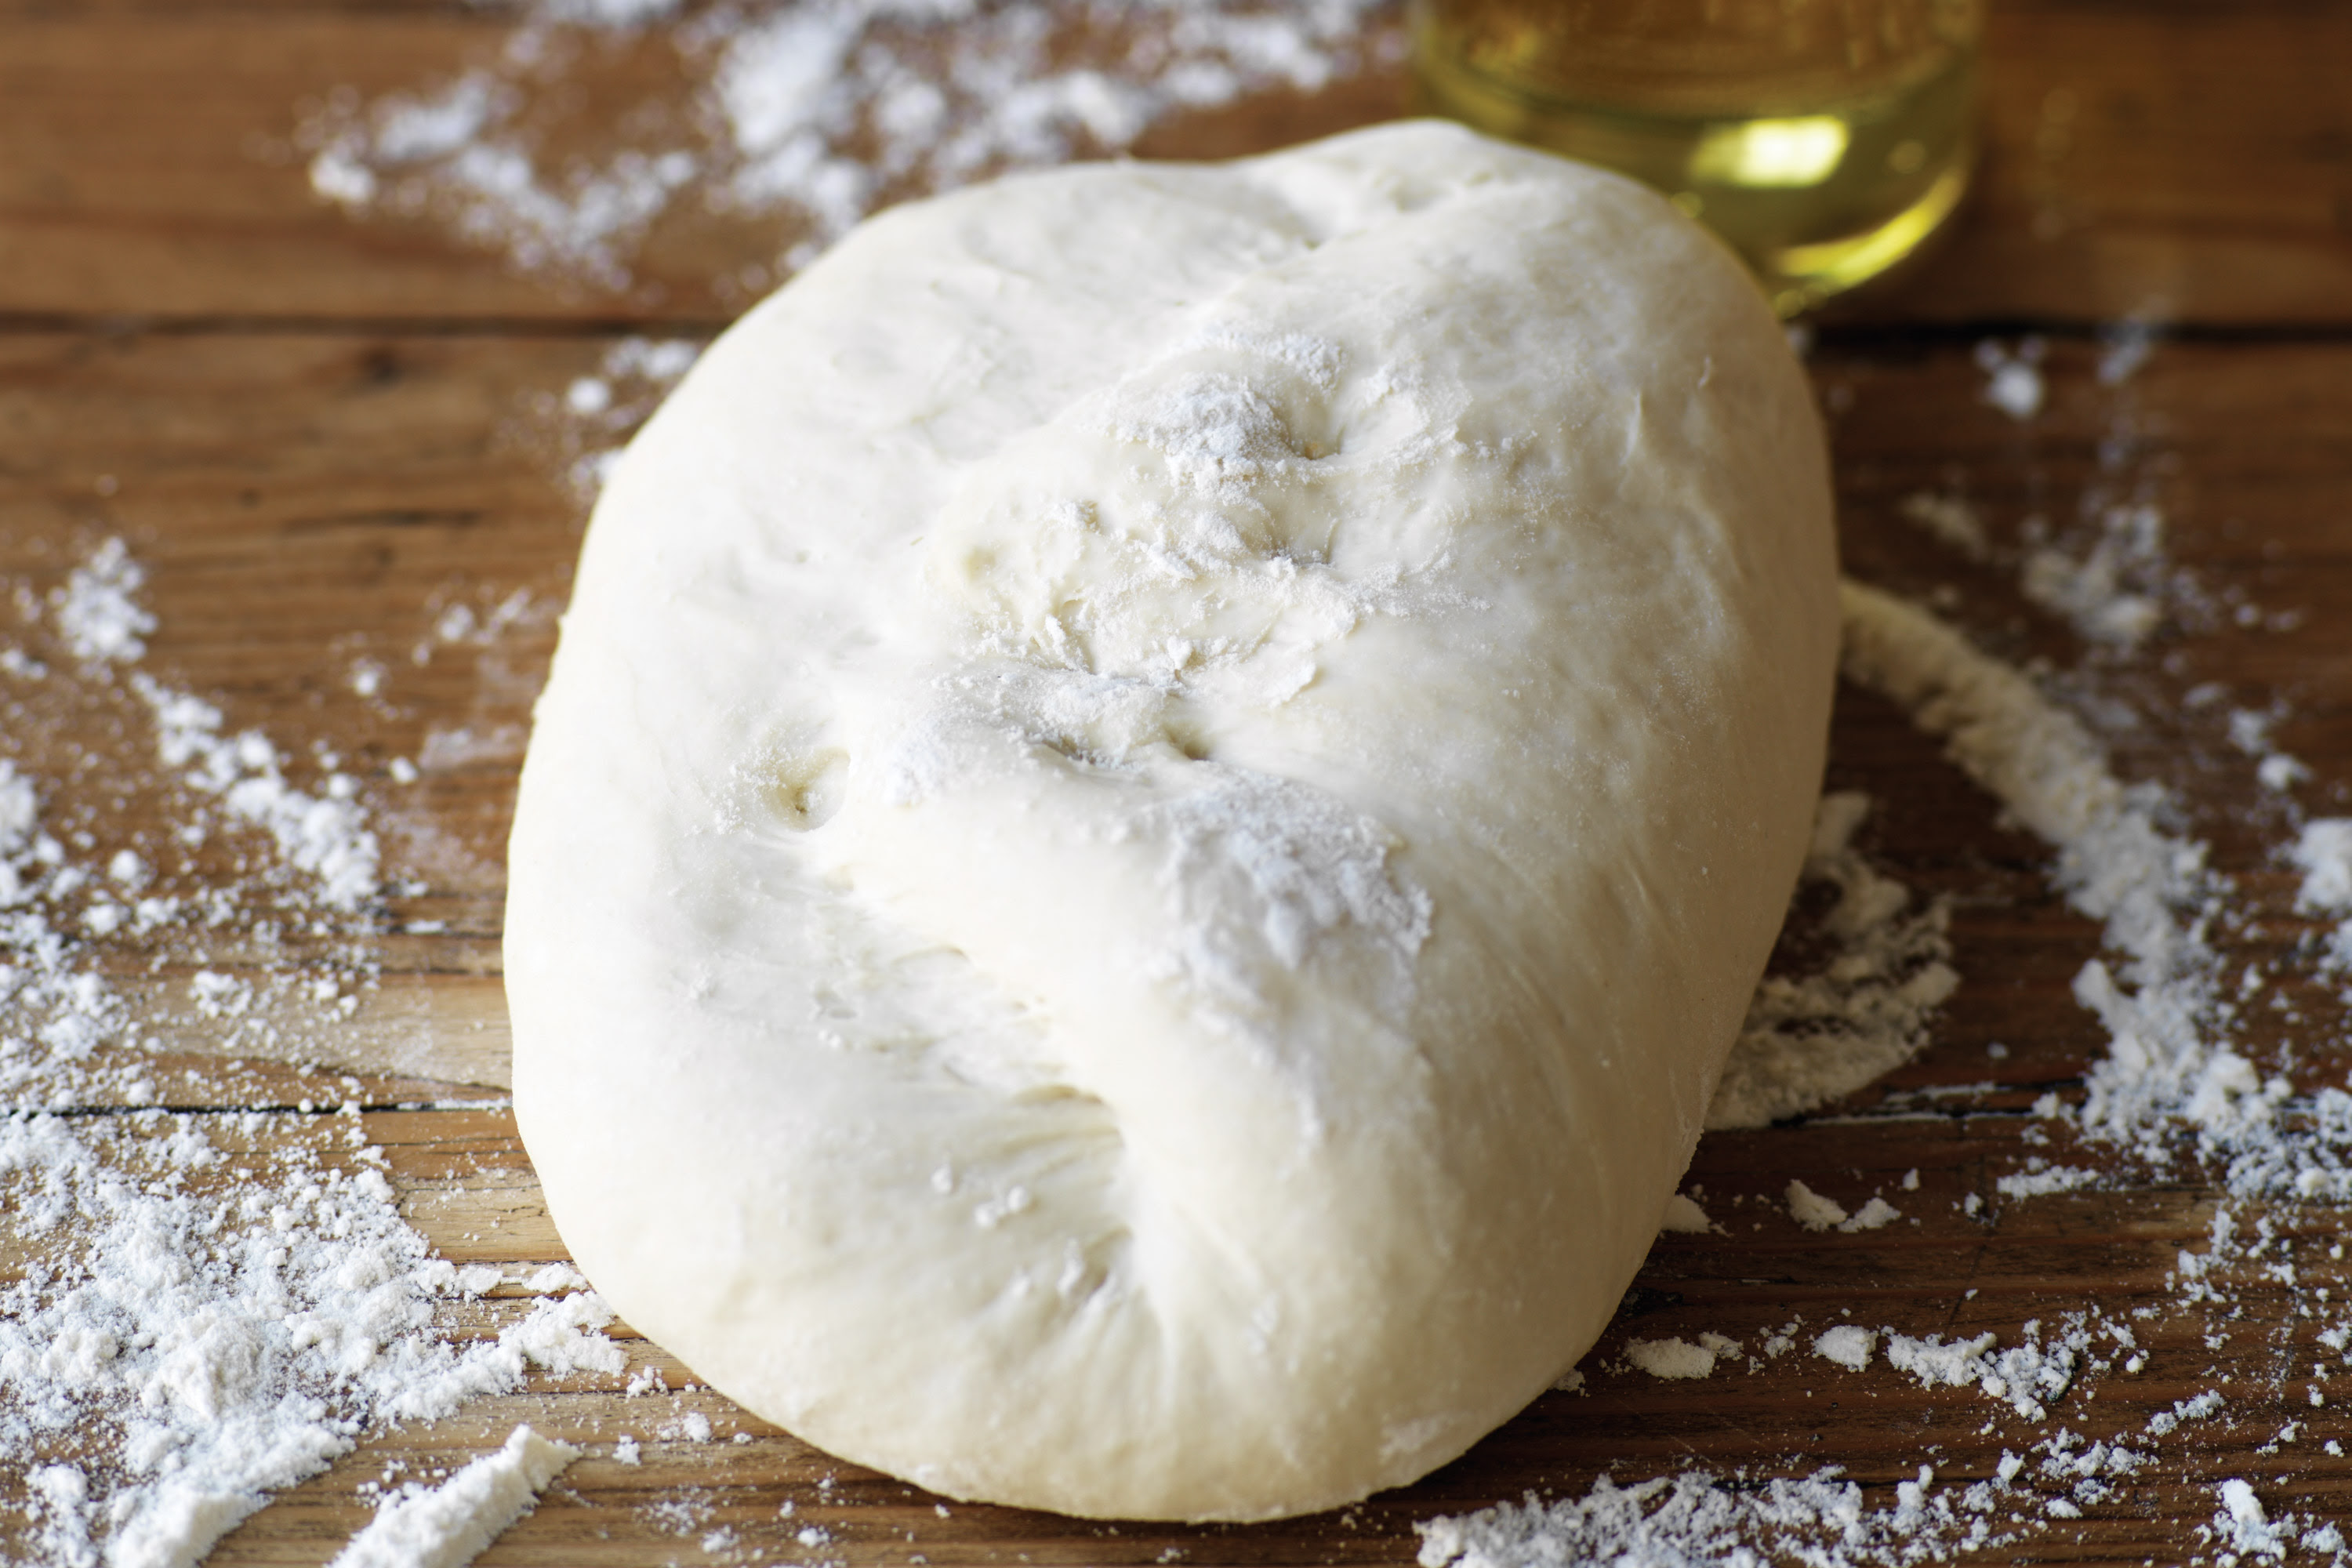 Pizza dough